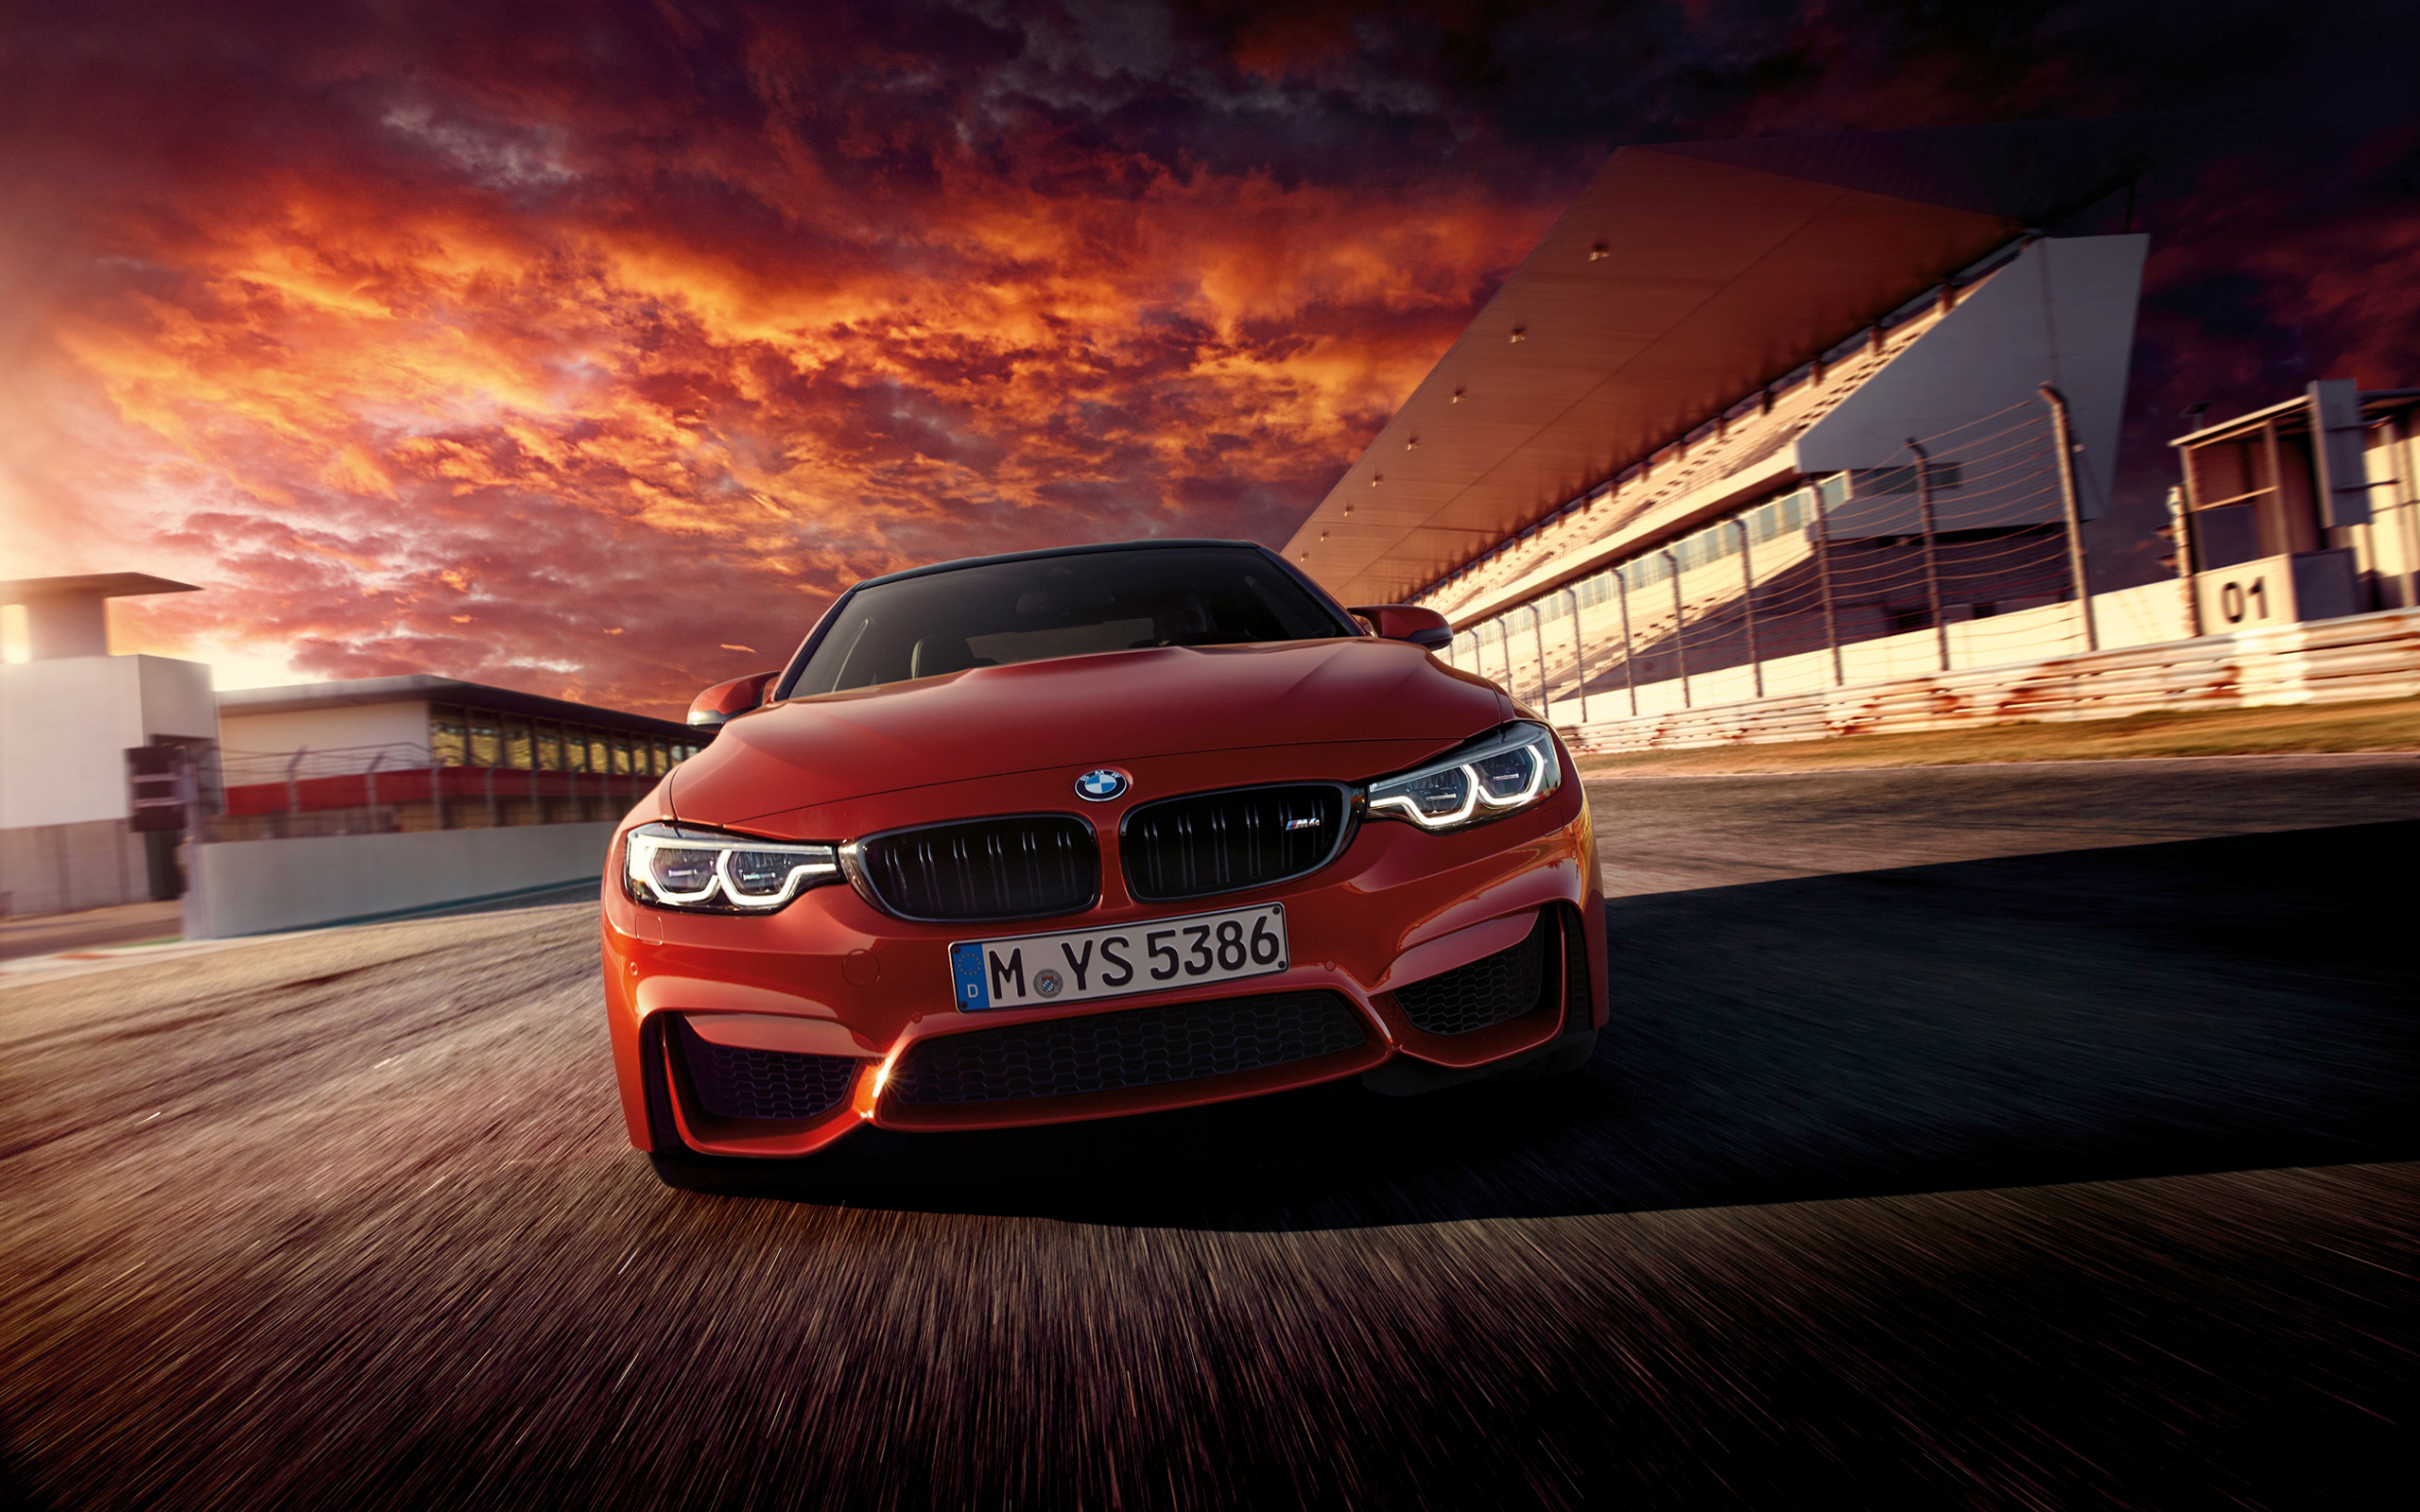 2560x1600 - BMW M4 Wallpapers 17